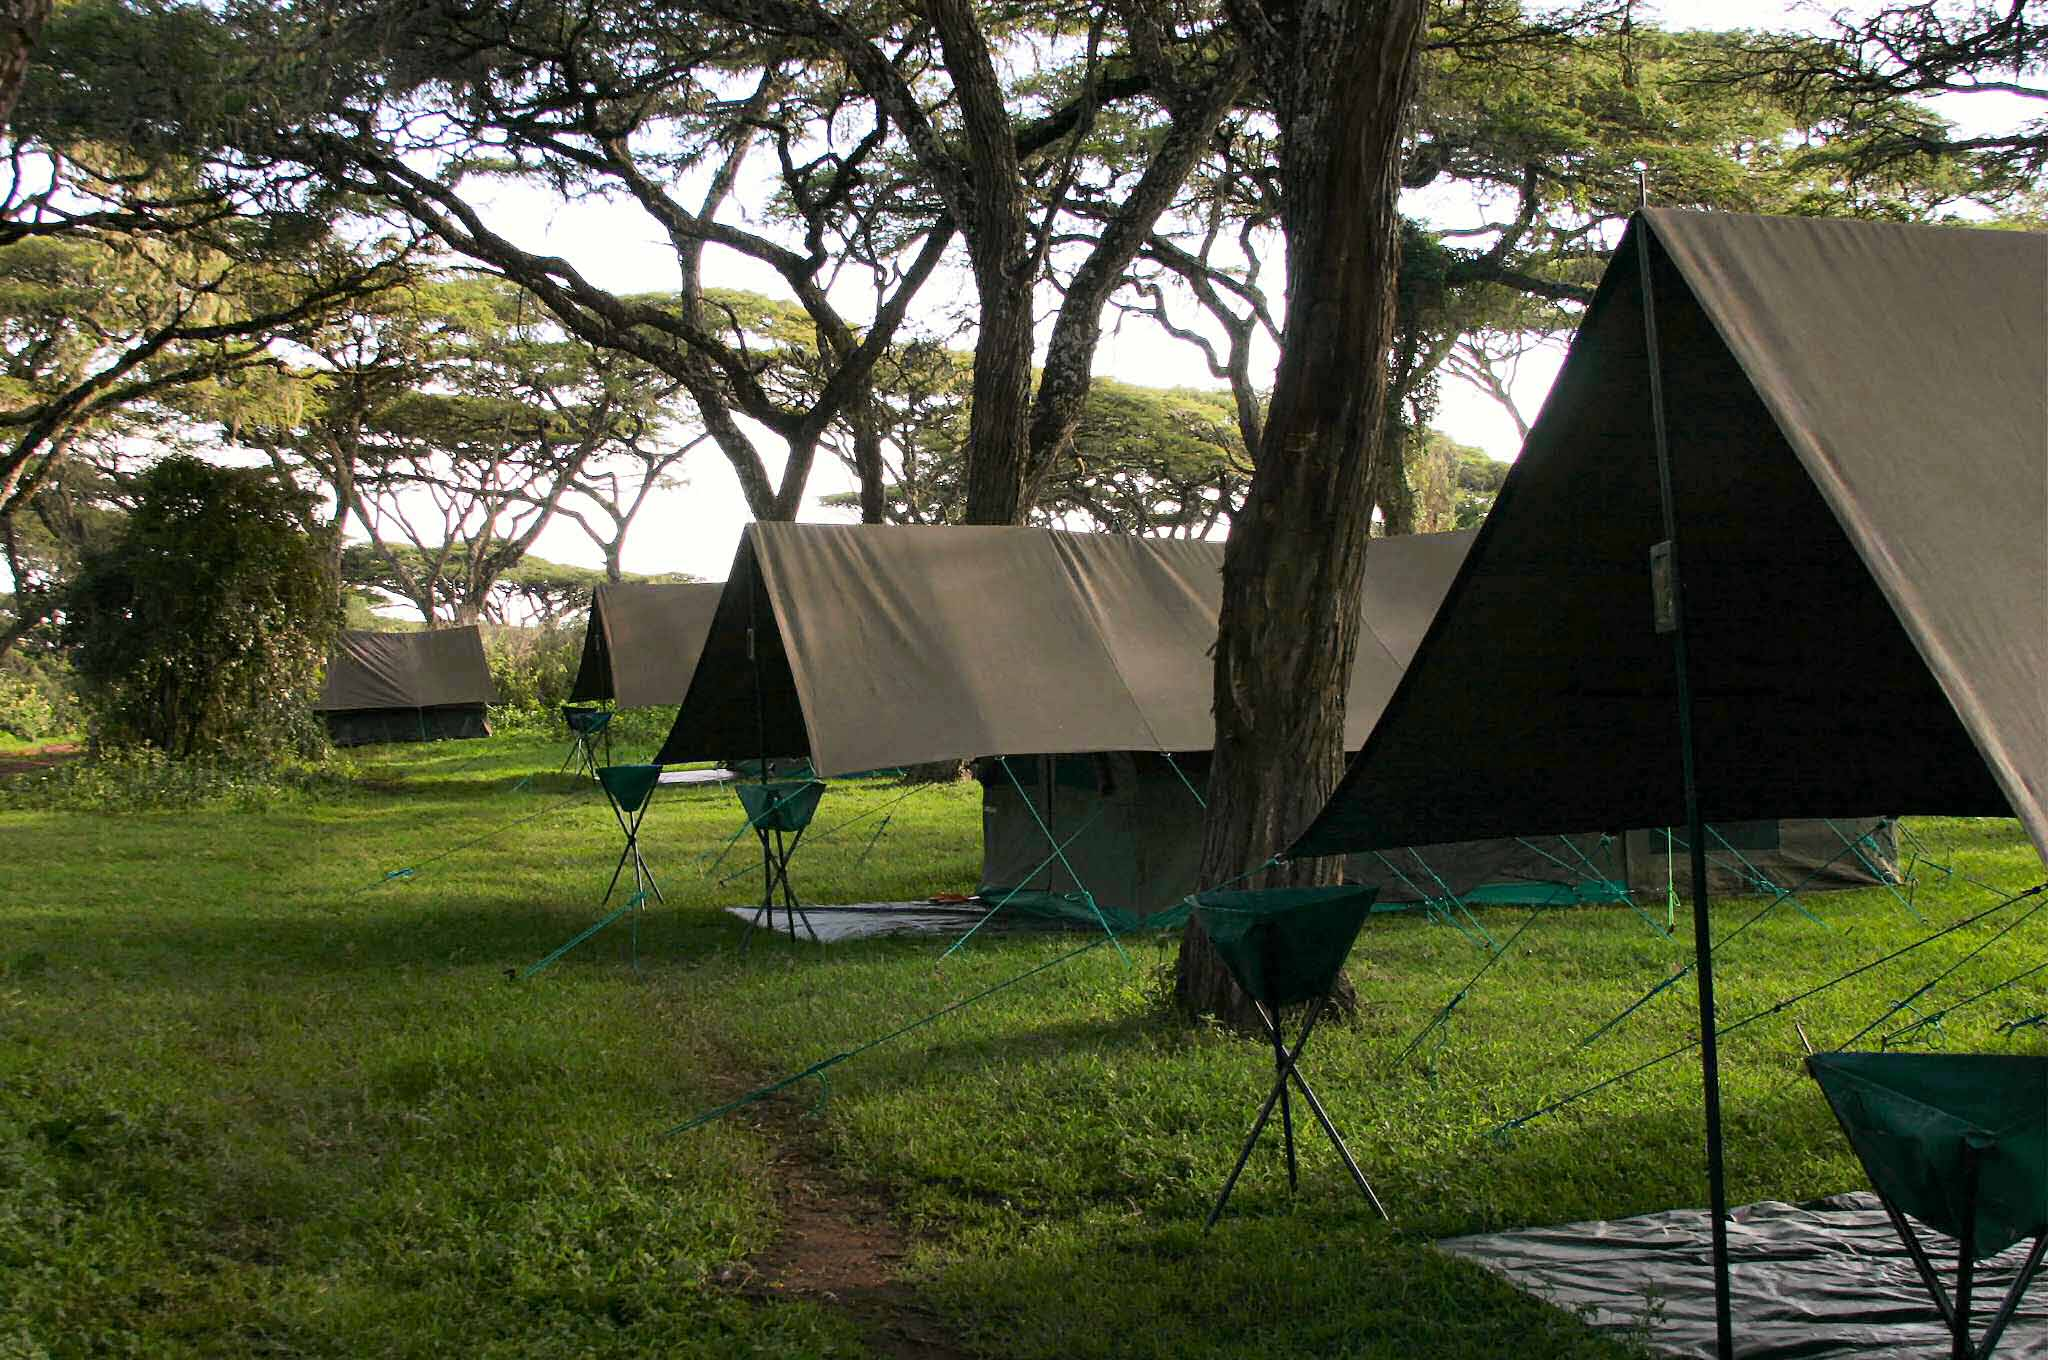 Forest tent camp on Ngorongoro Crater rim